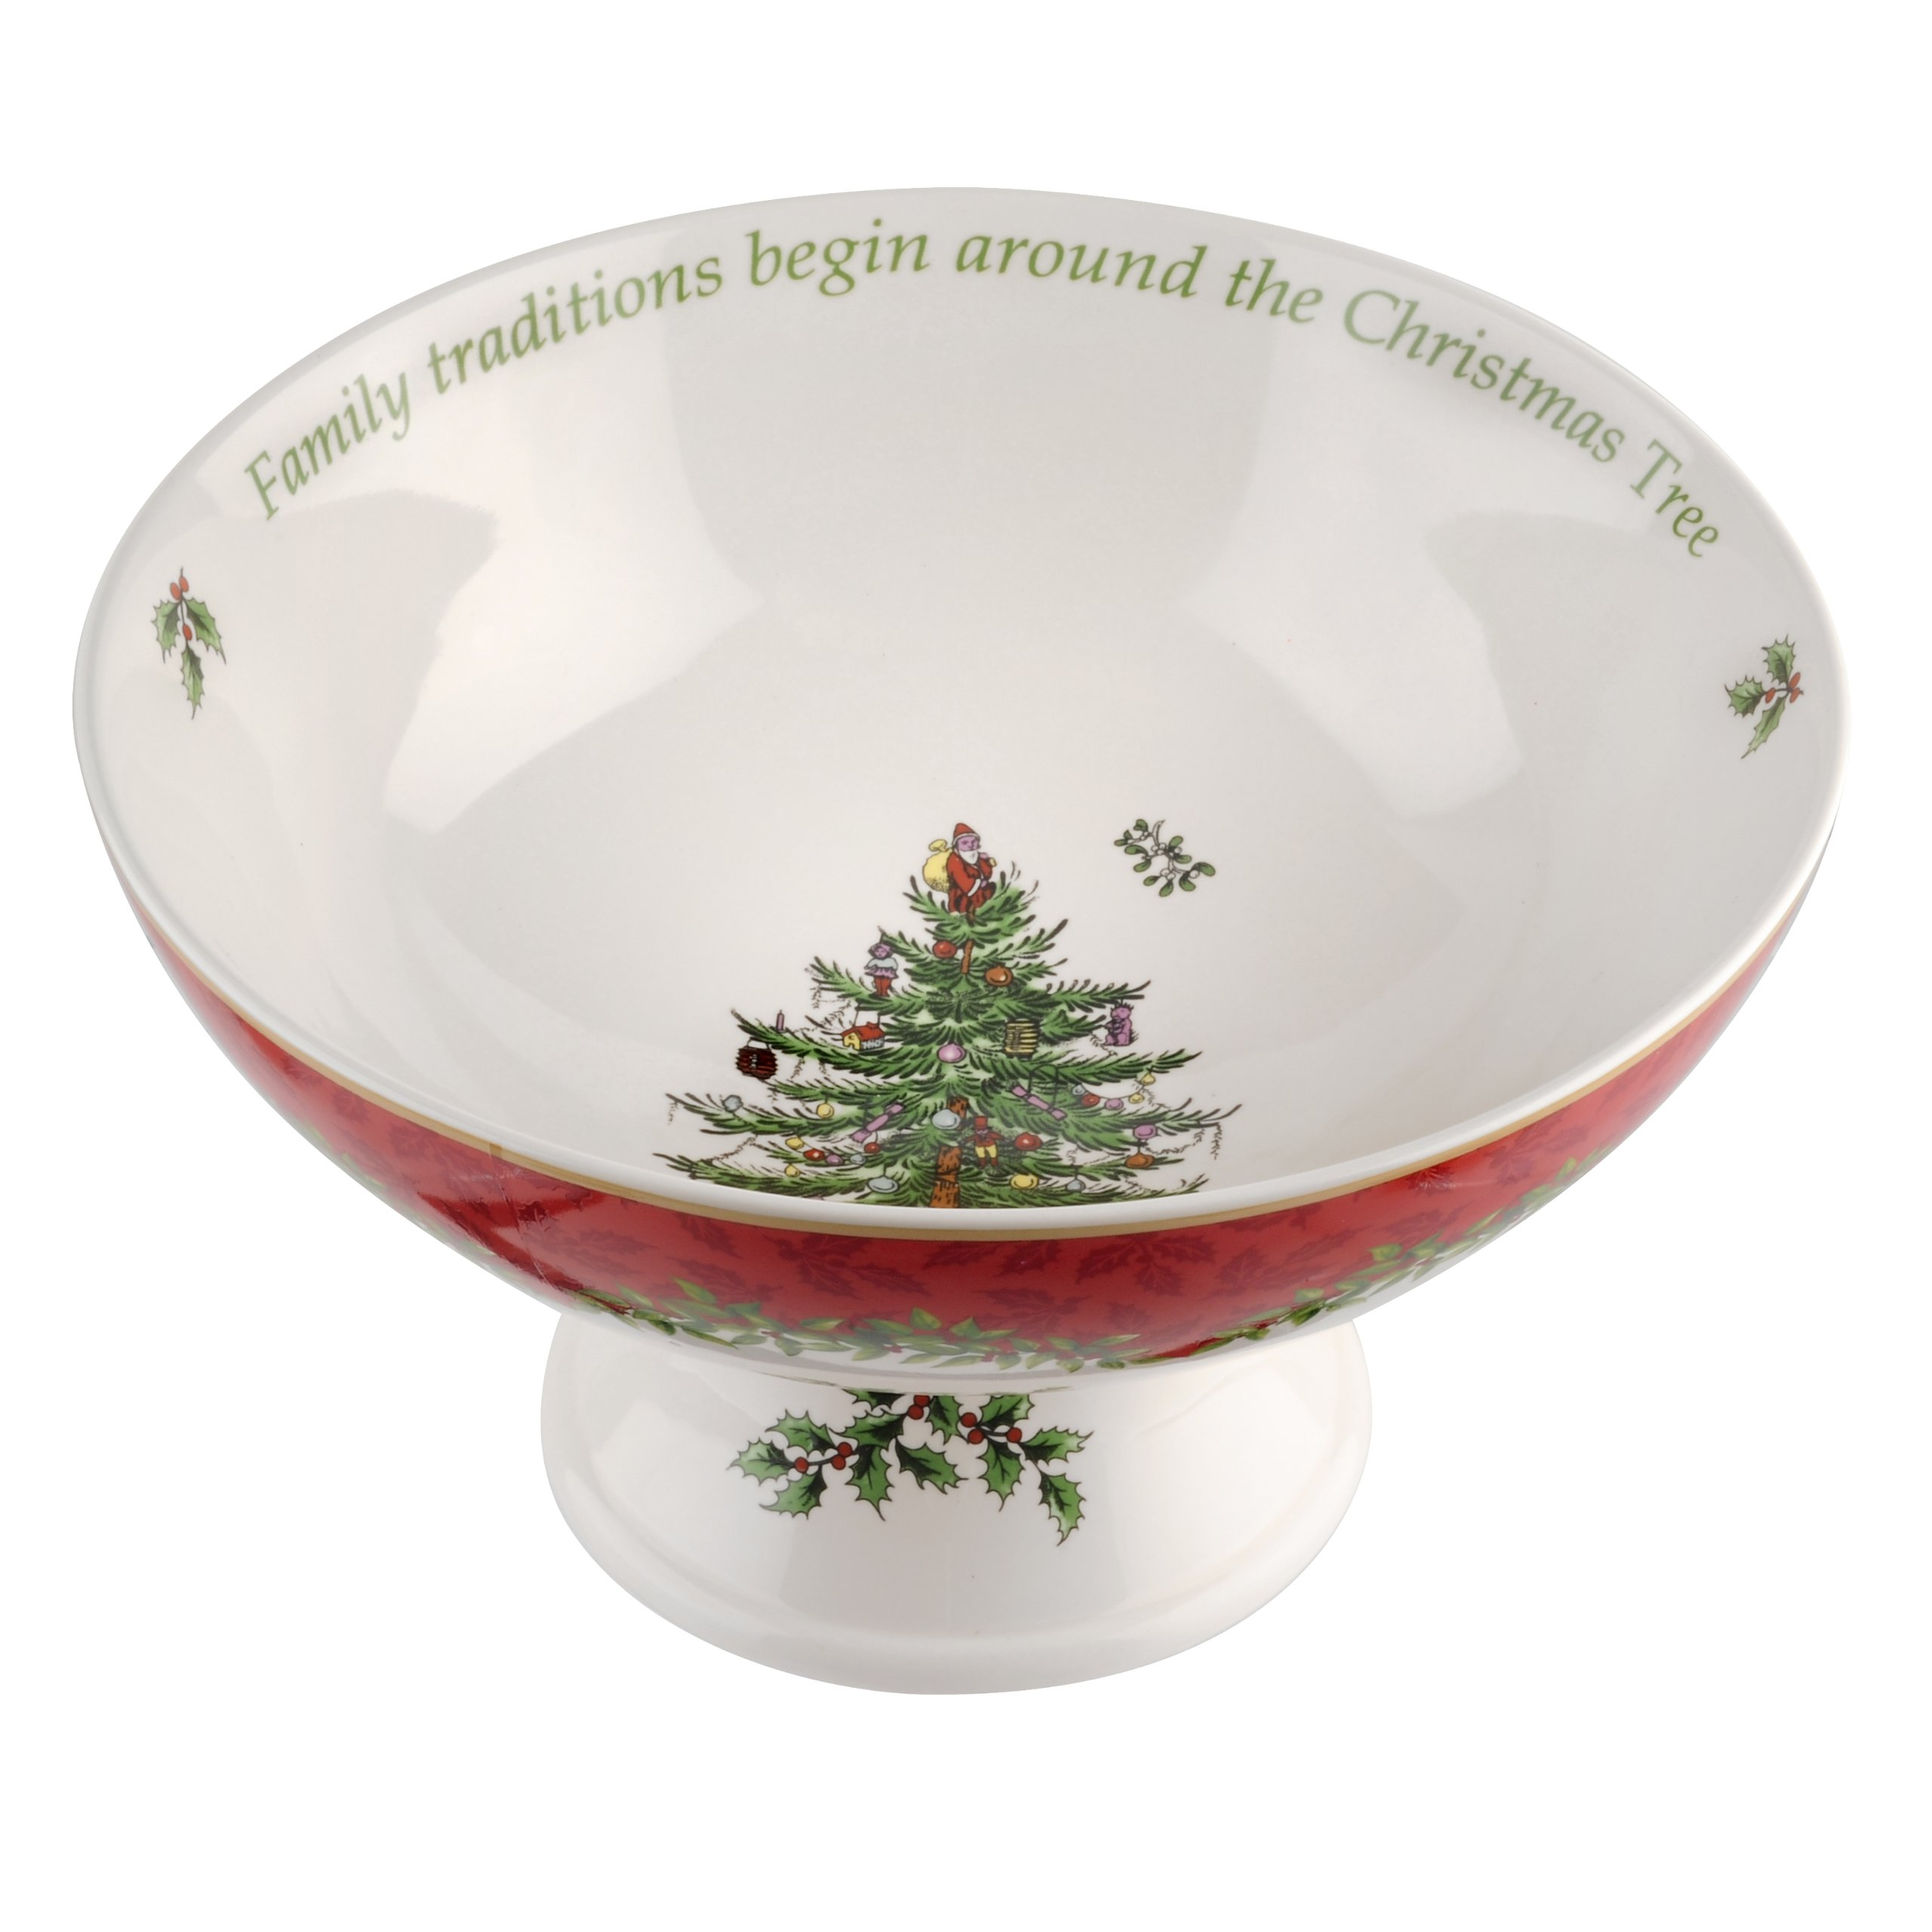 Spode Christmas Tree Annual 2013 Footed Compote Serving Bowl